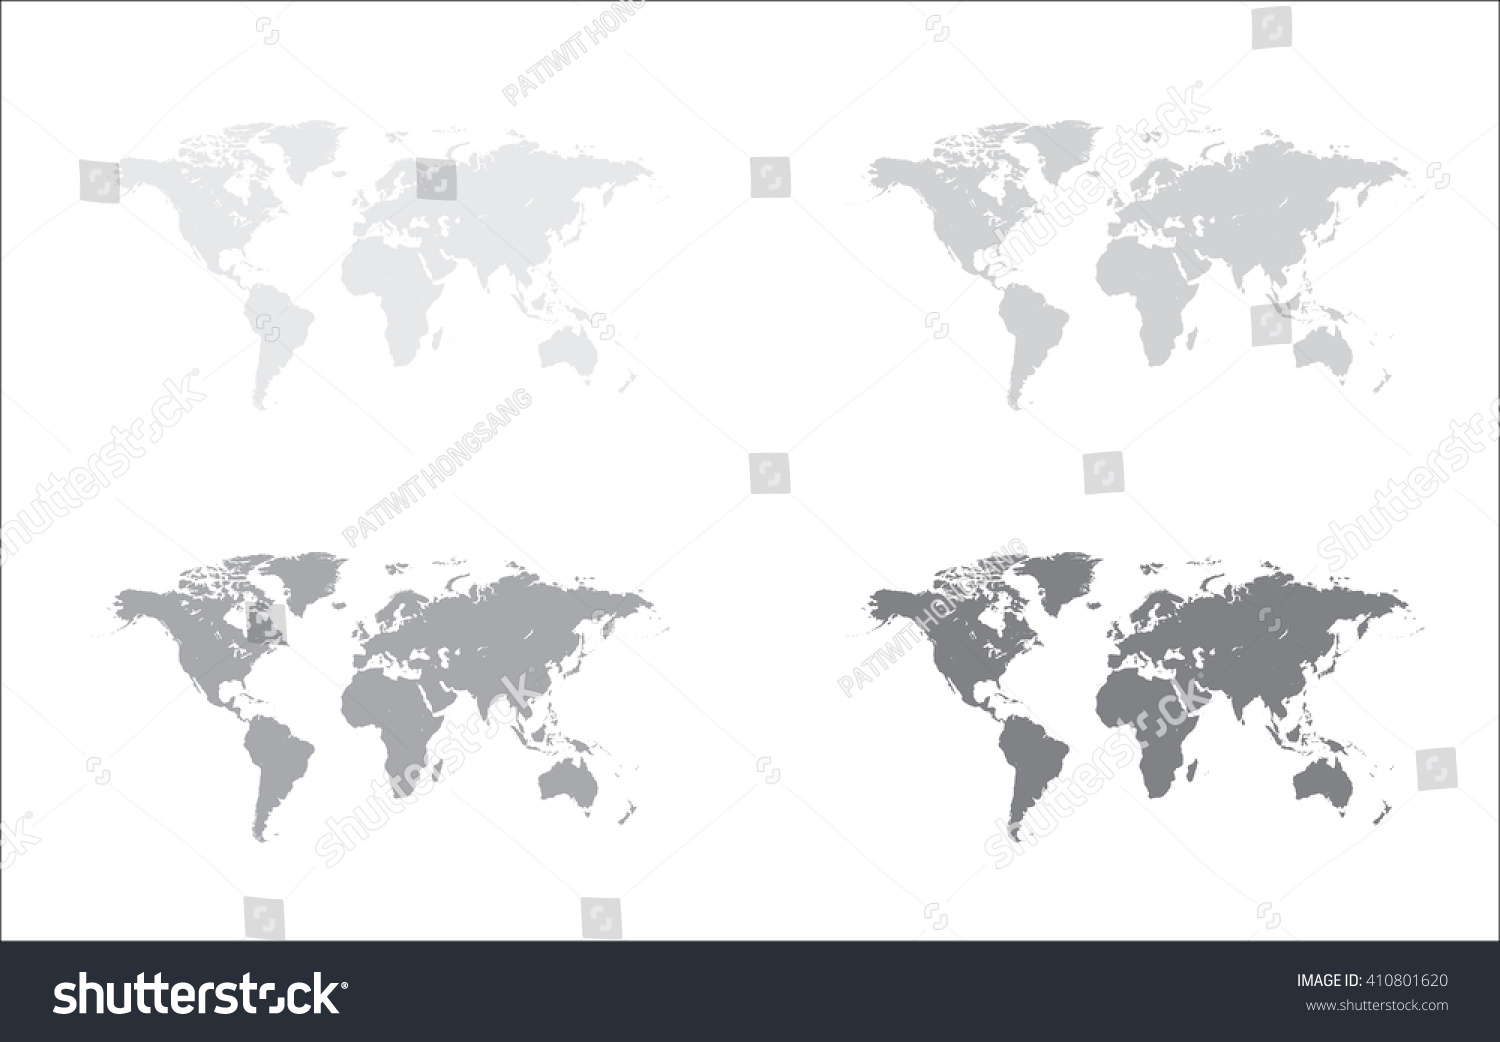 Gray world map world map icon stock vector 410801620 shutterstock gray world map world map icon vector gumiabroncs Images